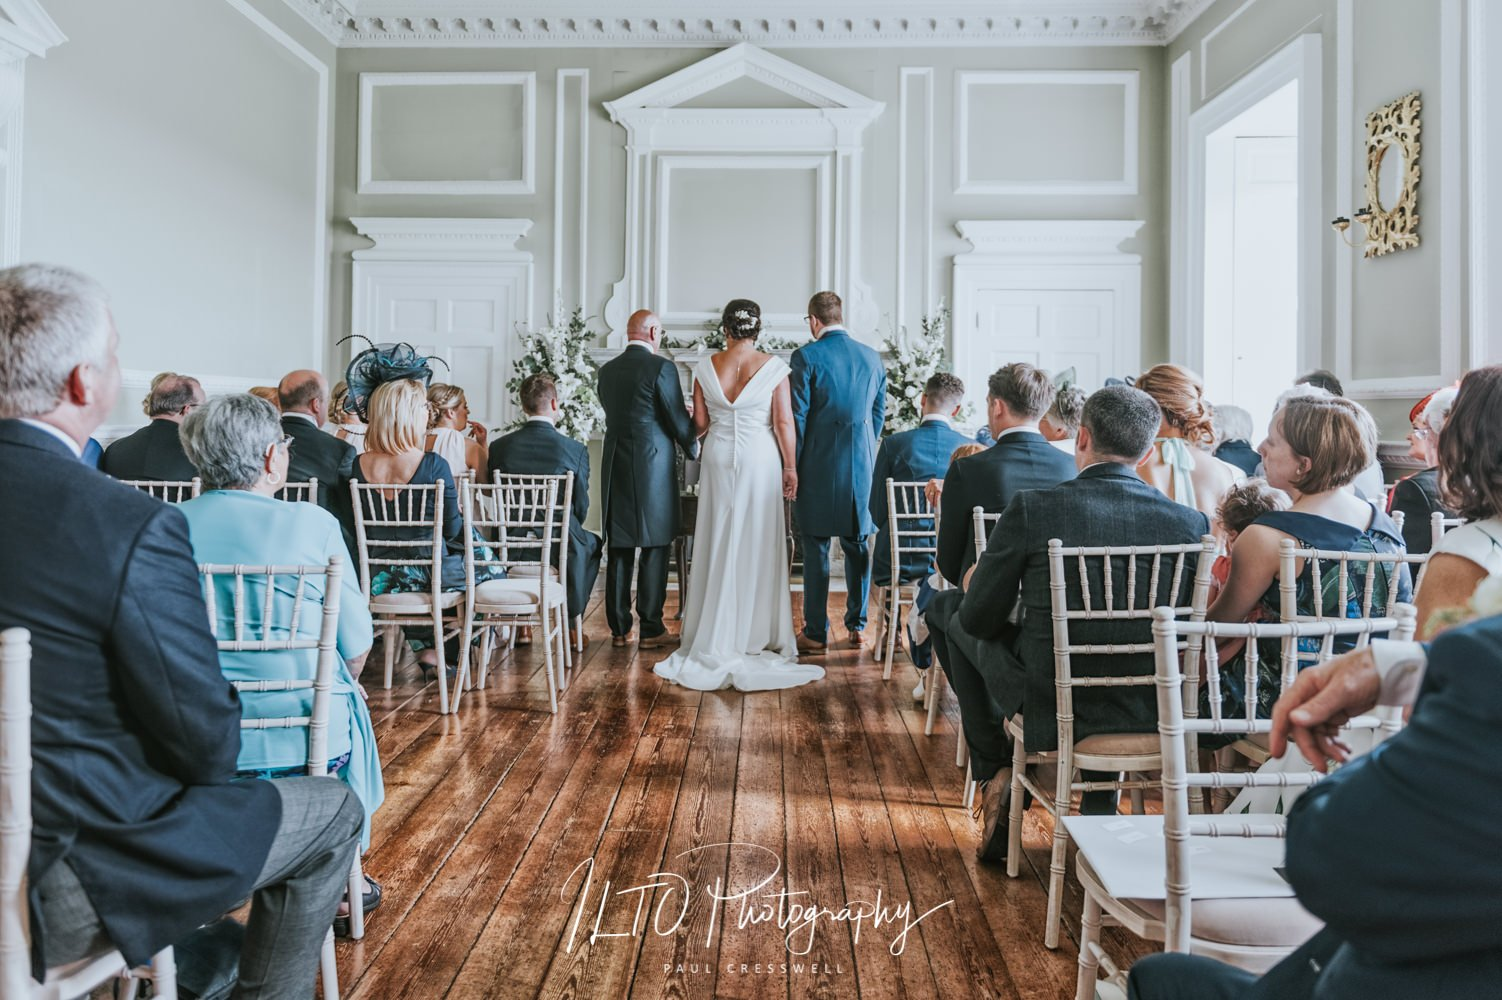 Affordable wedding photography Cusworth Hall Doncaster